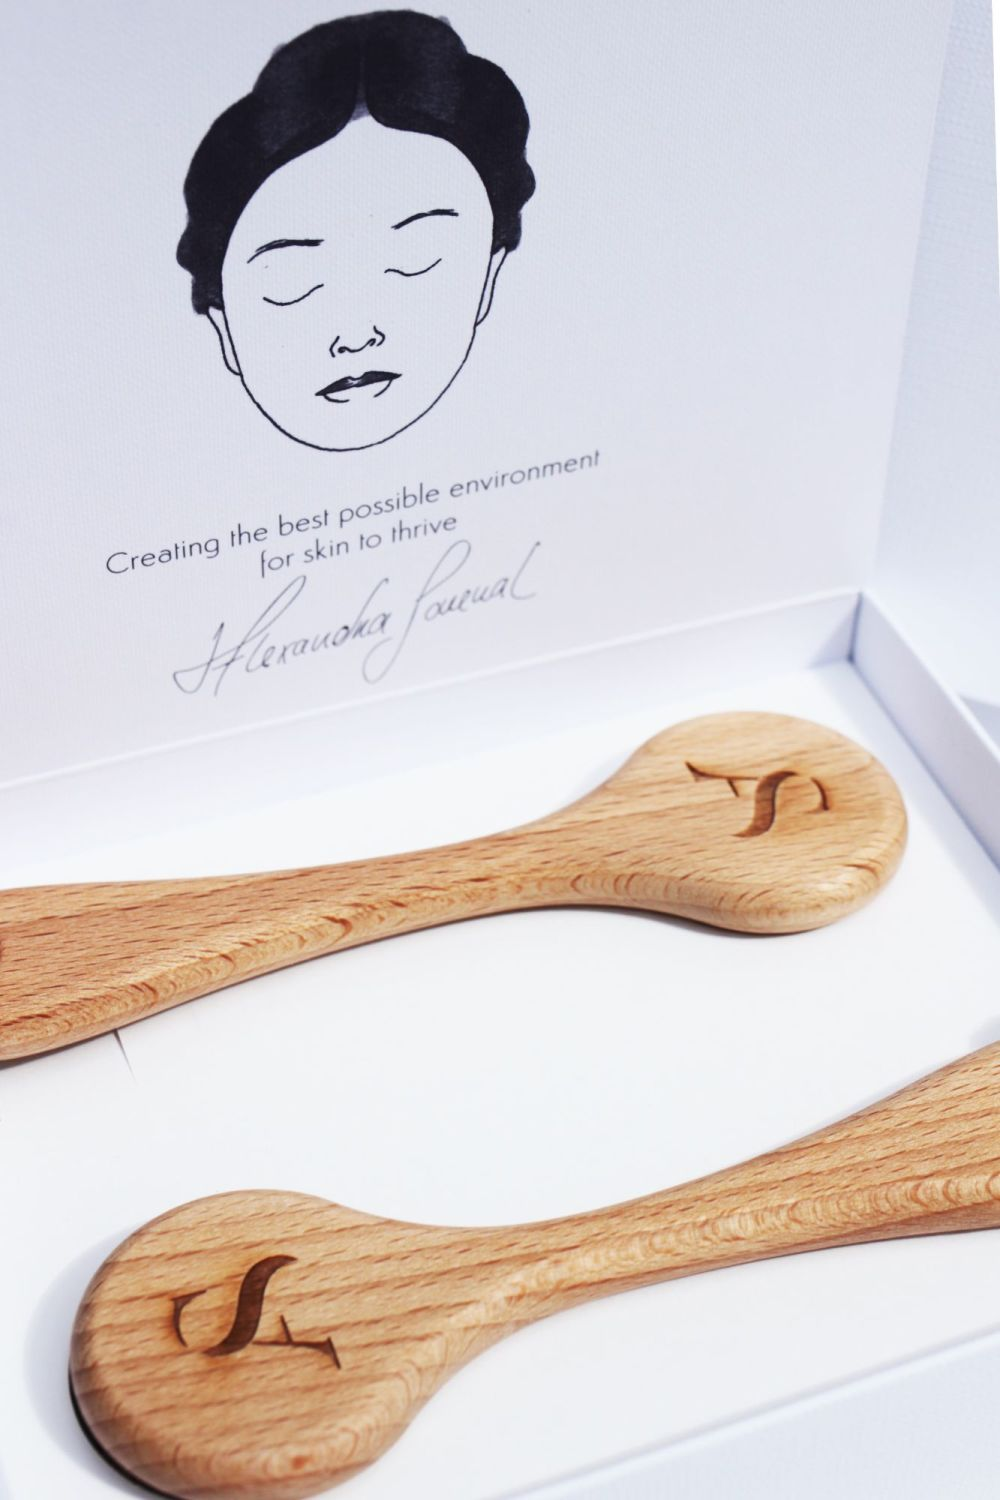 soveral dry face brushes